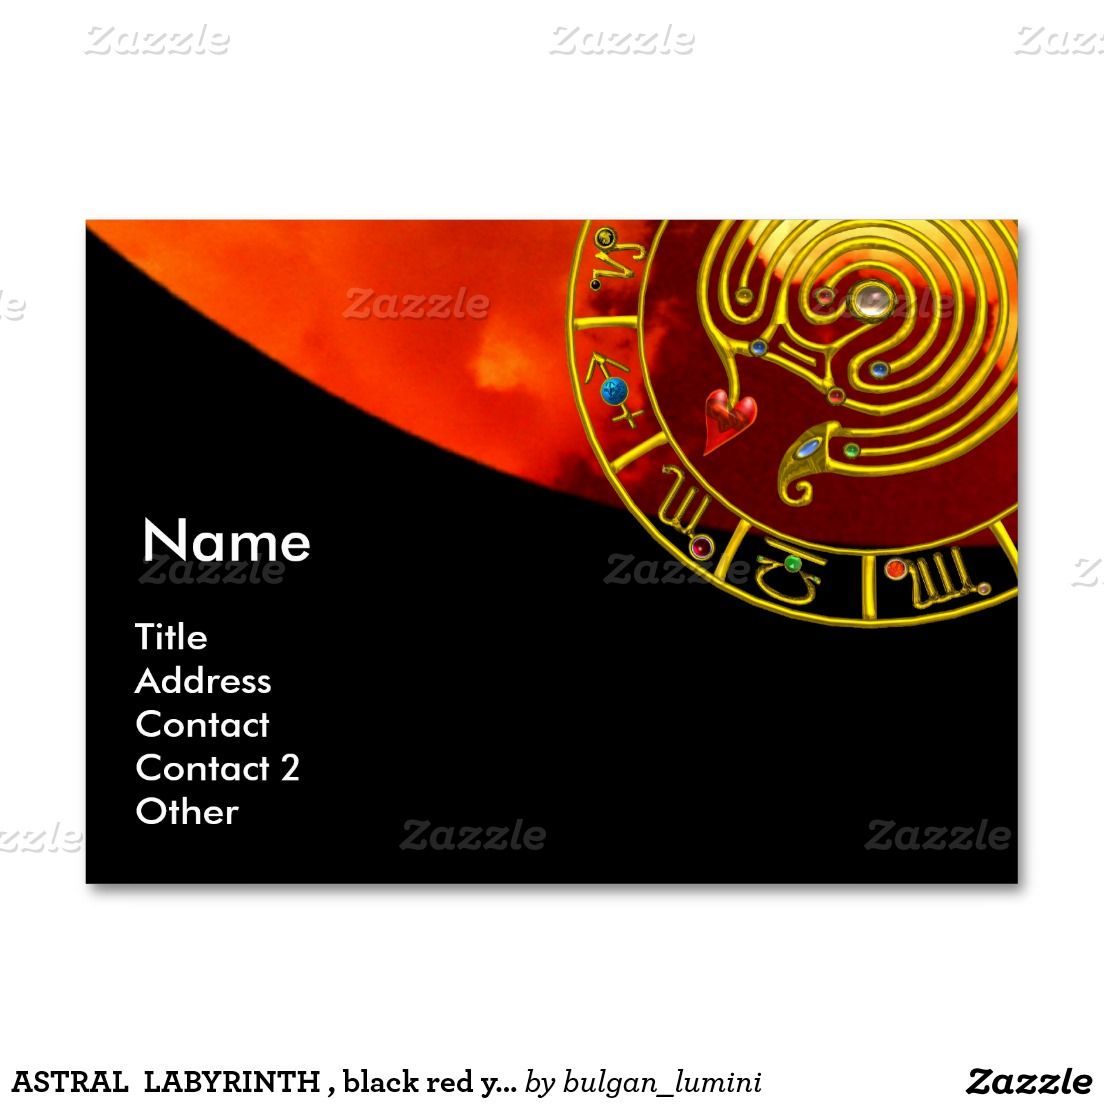 ASTRAL LABYRINTH,ASTROLOGY ZODIAC SIGN CHART Black Business Card ...